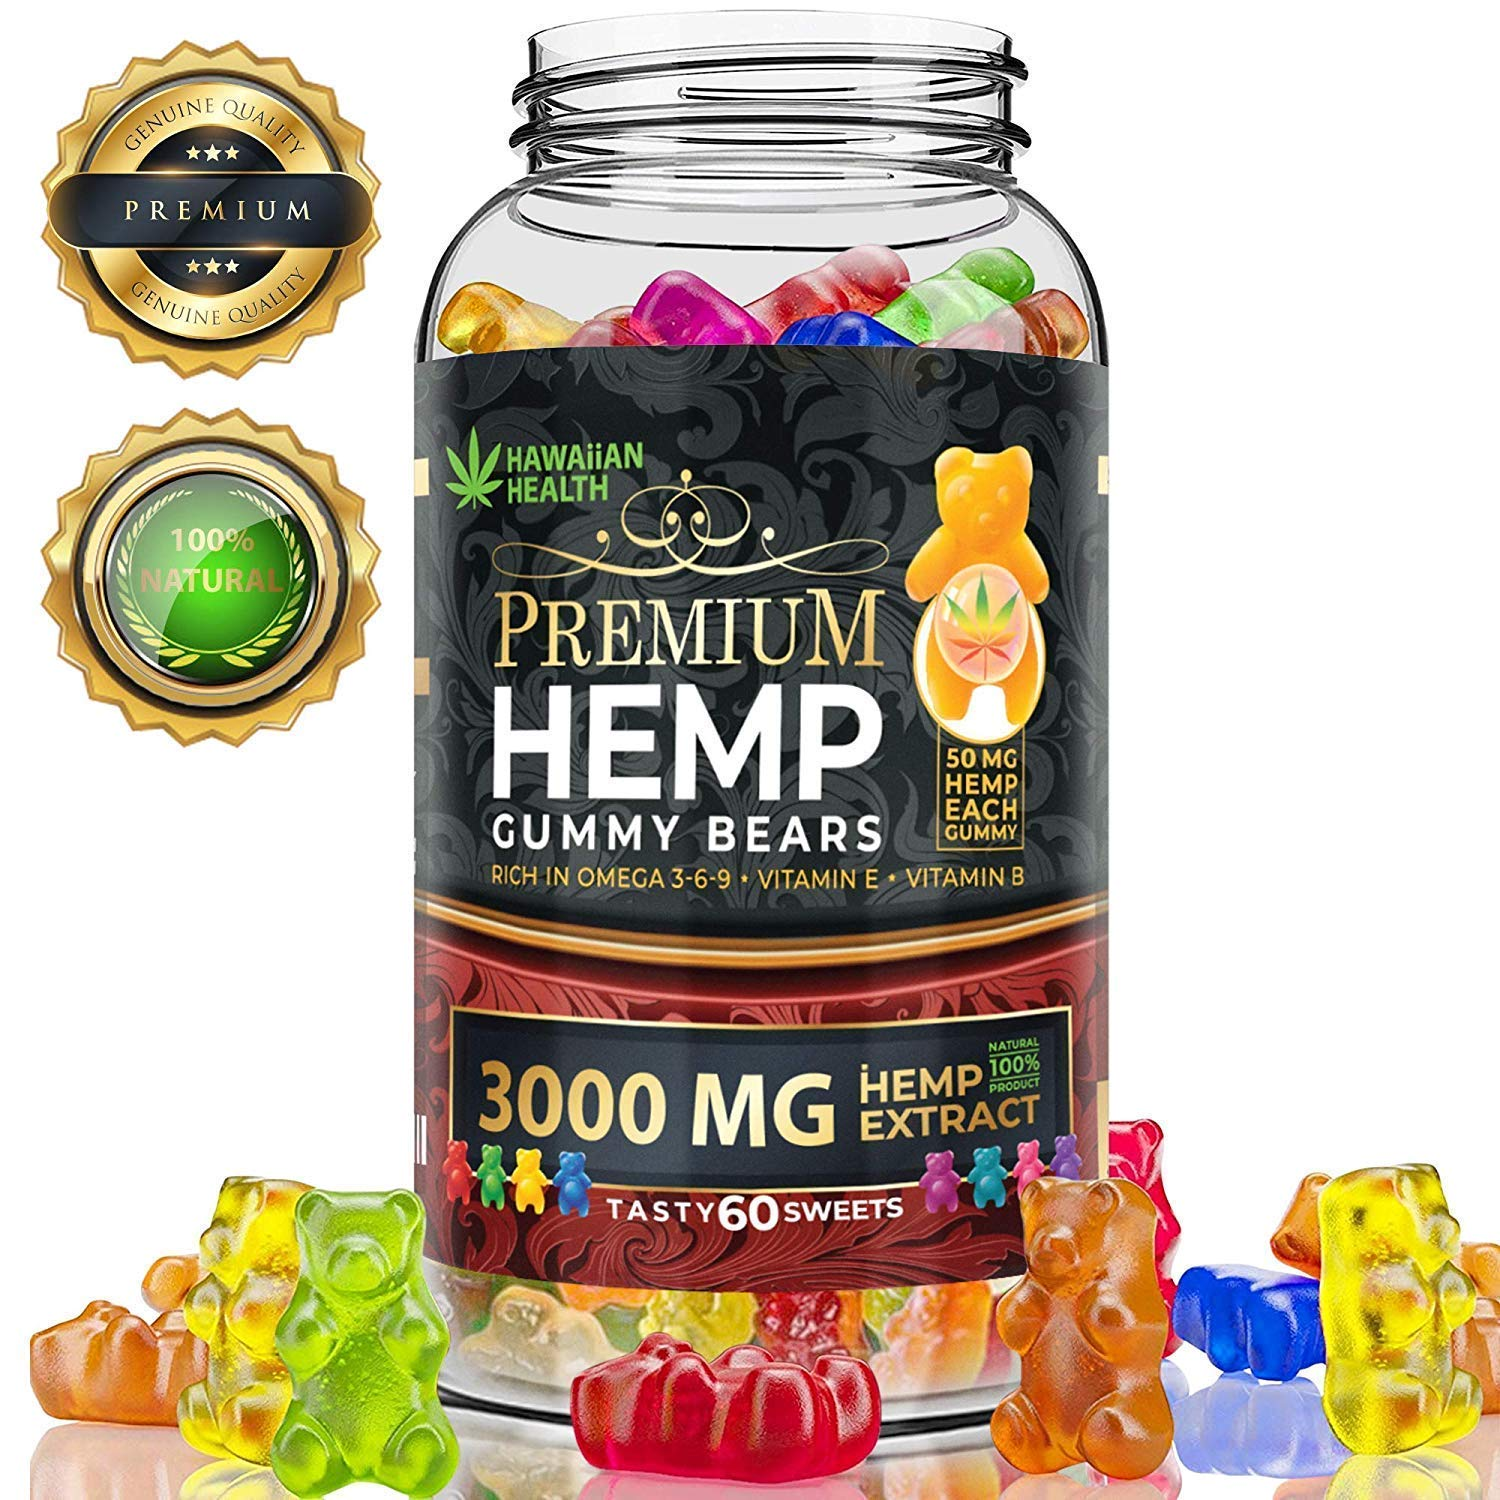 Hemp Gummies Premium 350000 High Potency – Fruity Gummy Bear with Hemp Oil – Natural Hemp Candy Supplements for Pain, Anxiety, Stress & Inflammation Relief – Promotes Sleep and Calm Mood